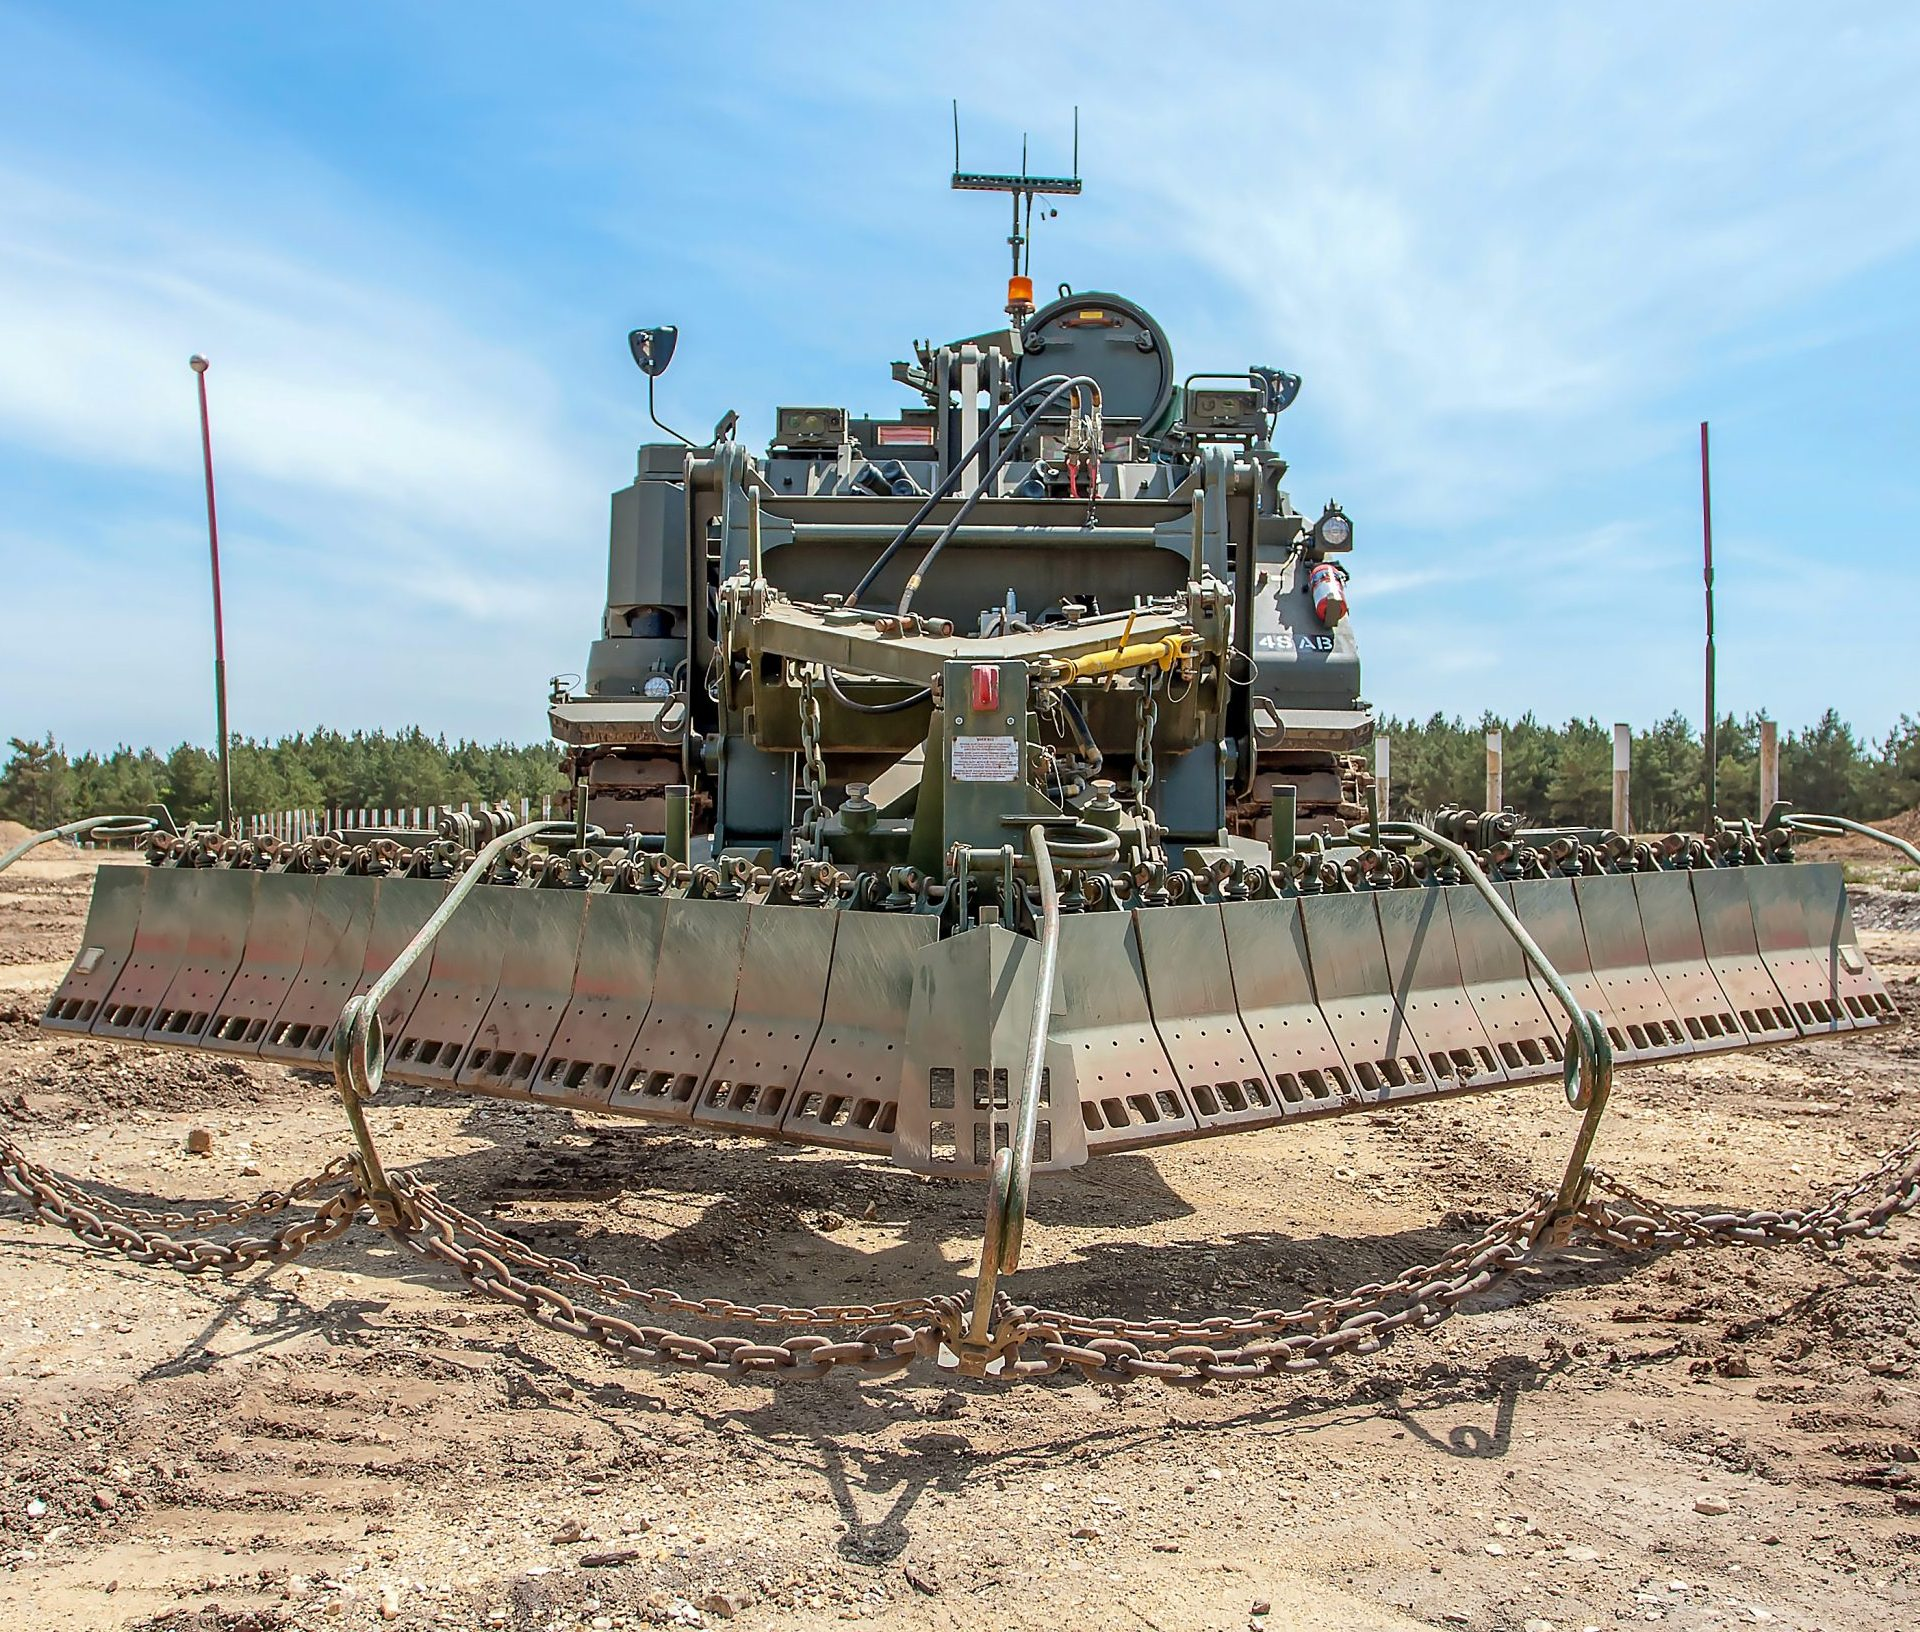 Pearson Engineering's Surface Clearance Device provides combat engineer vehicles with a surface laid landmine clearance capability.